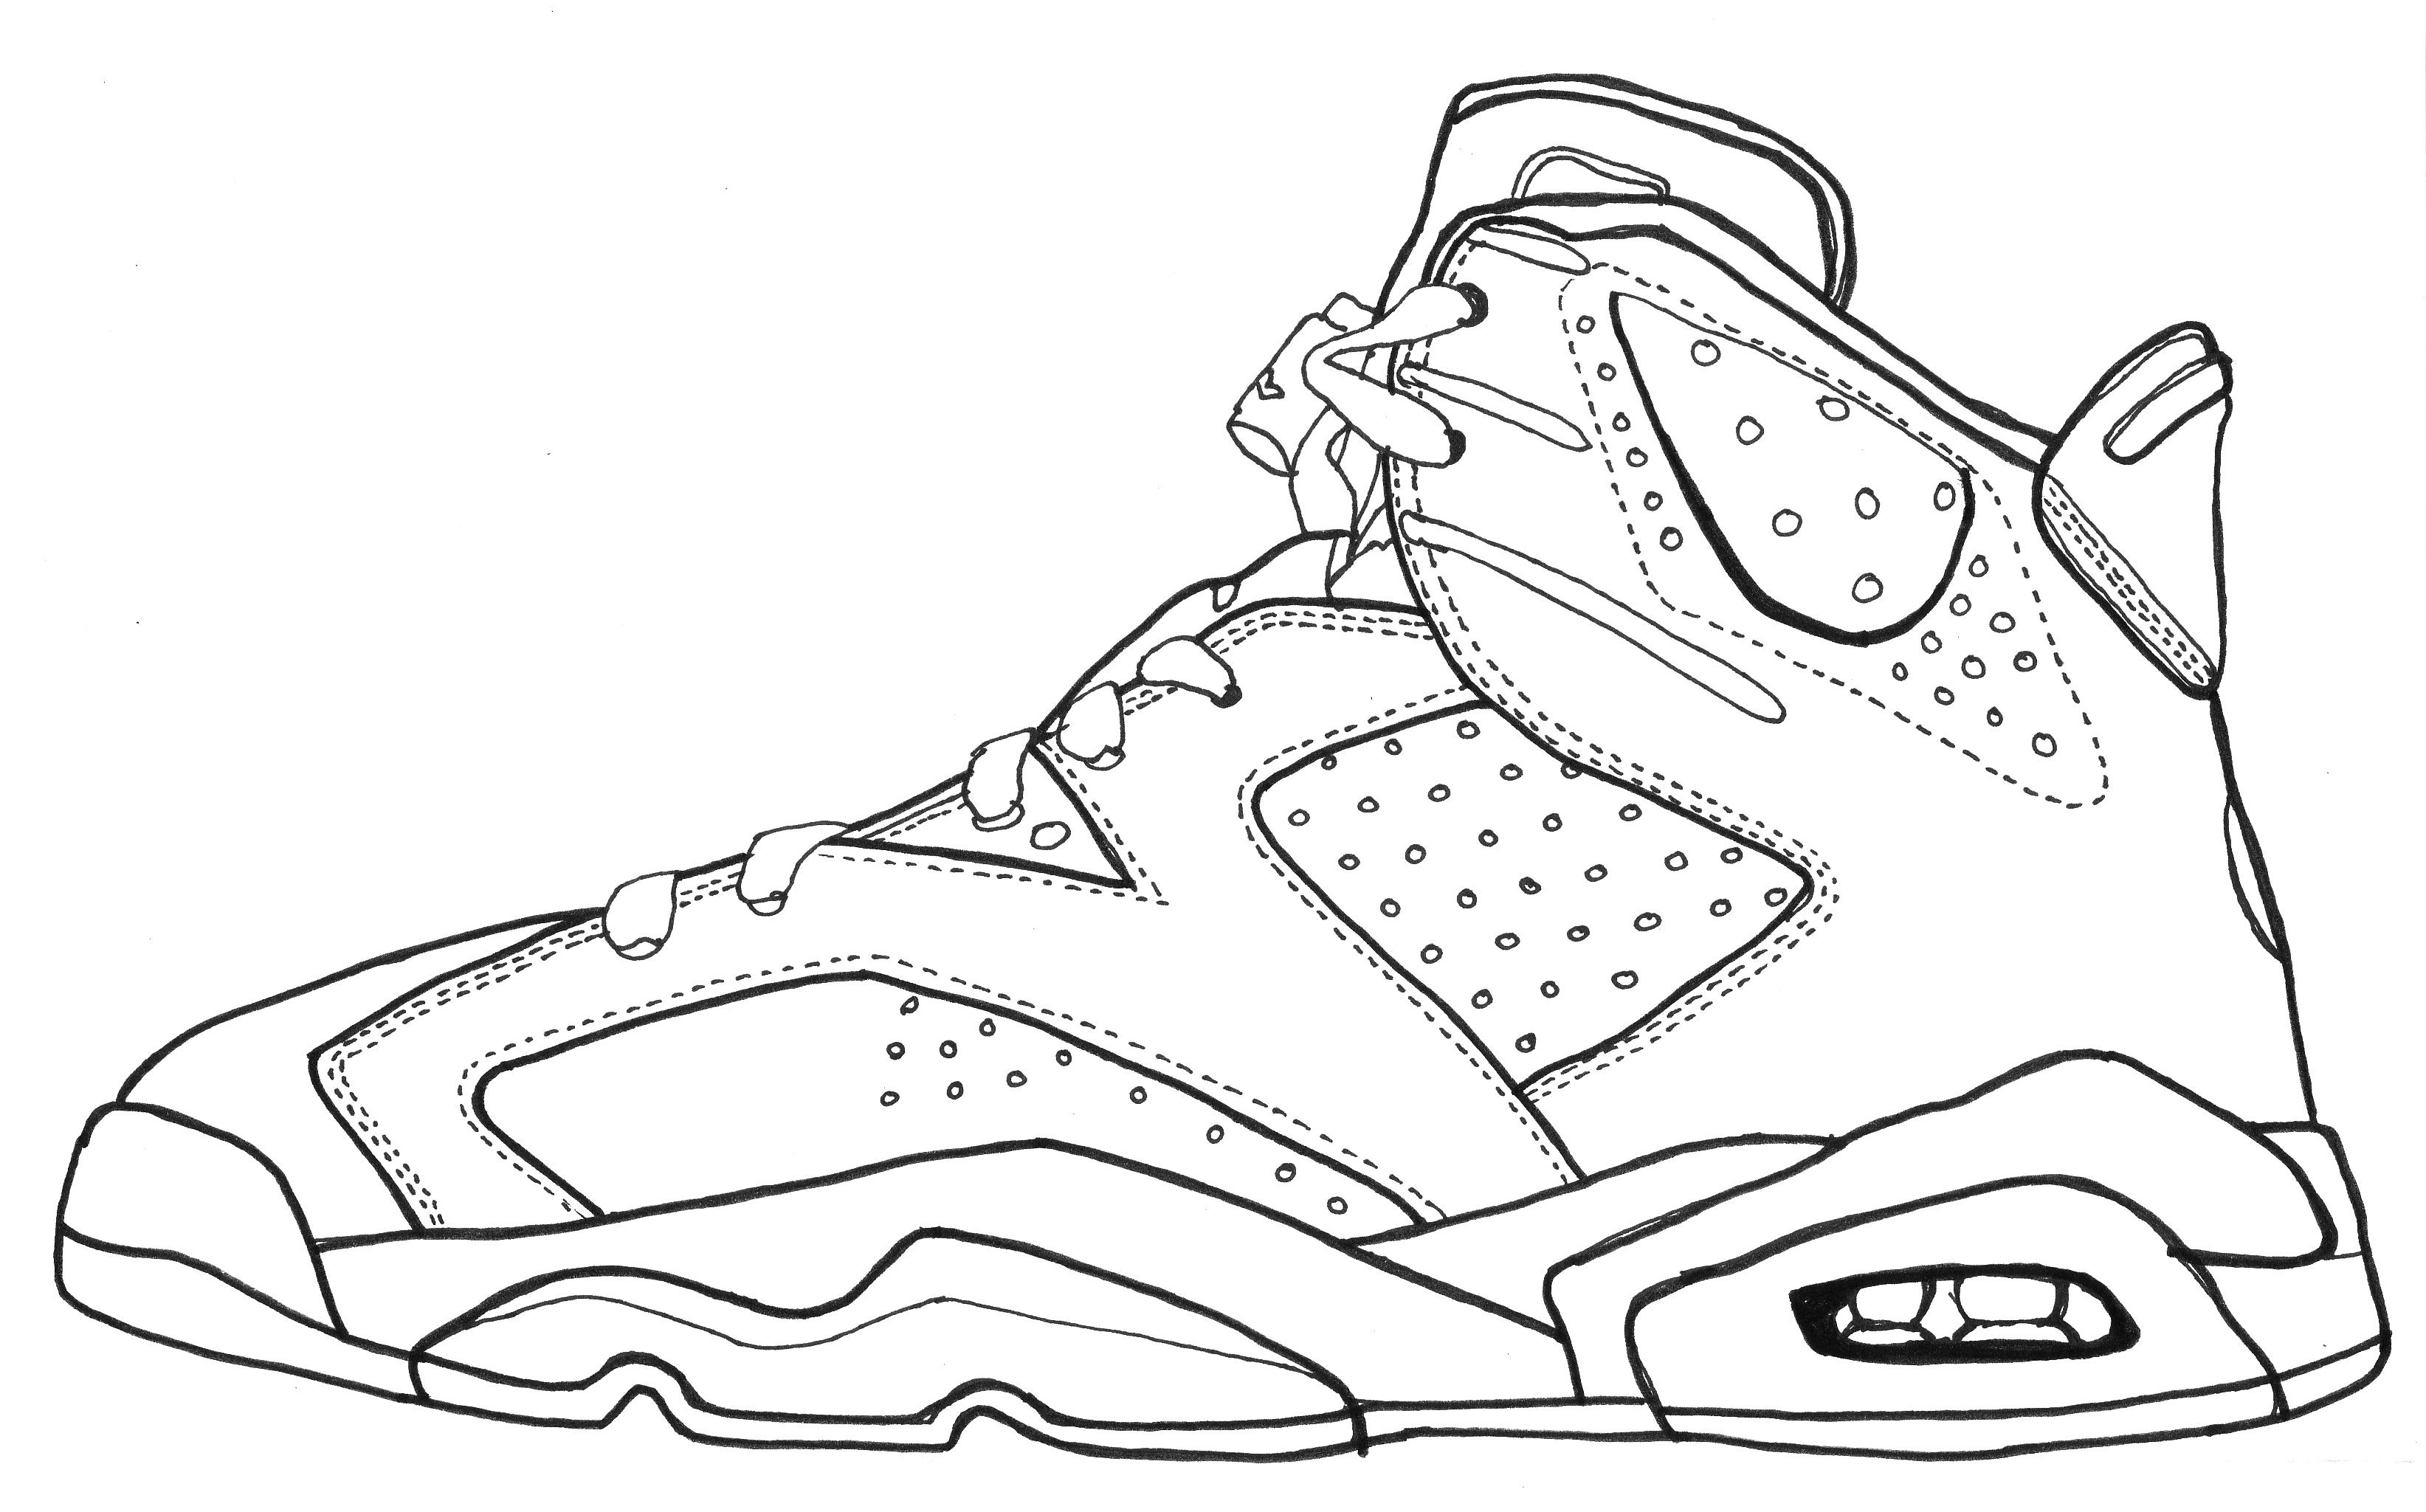 Jordan Vi Sketch Black And White Line Drawing Sneakers Drawing